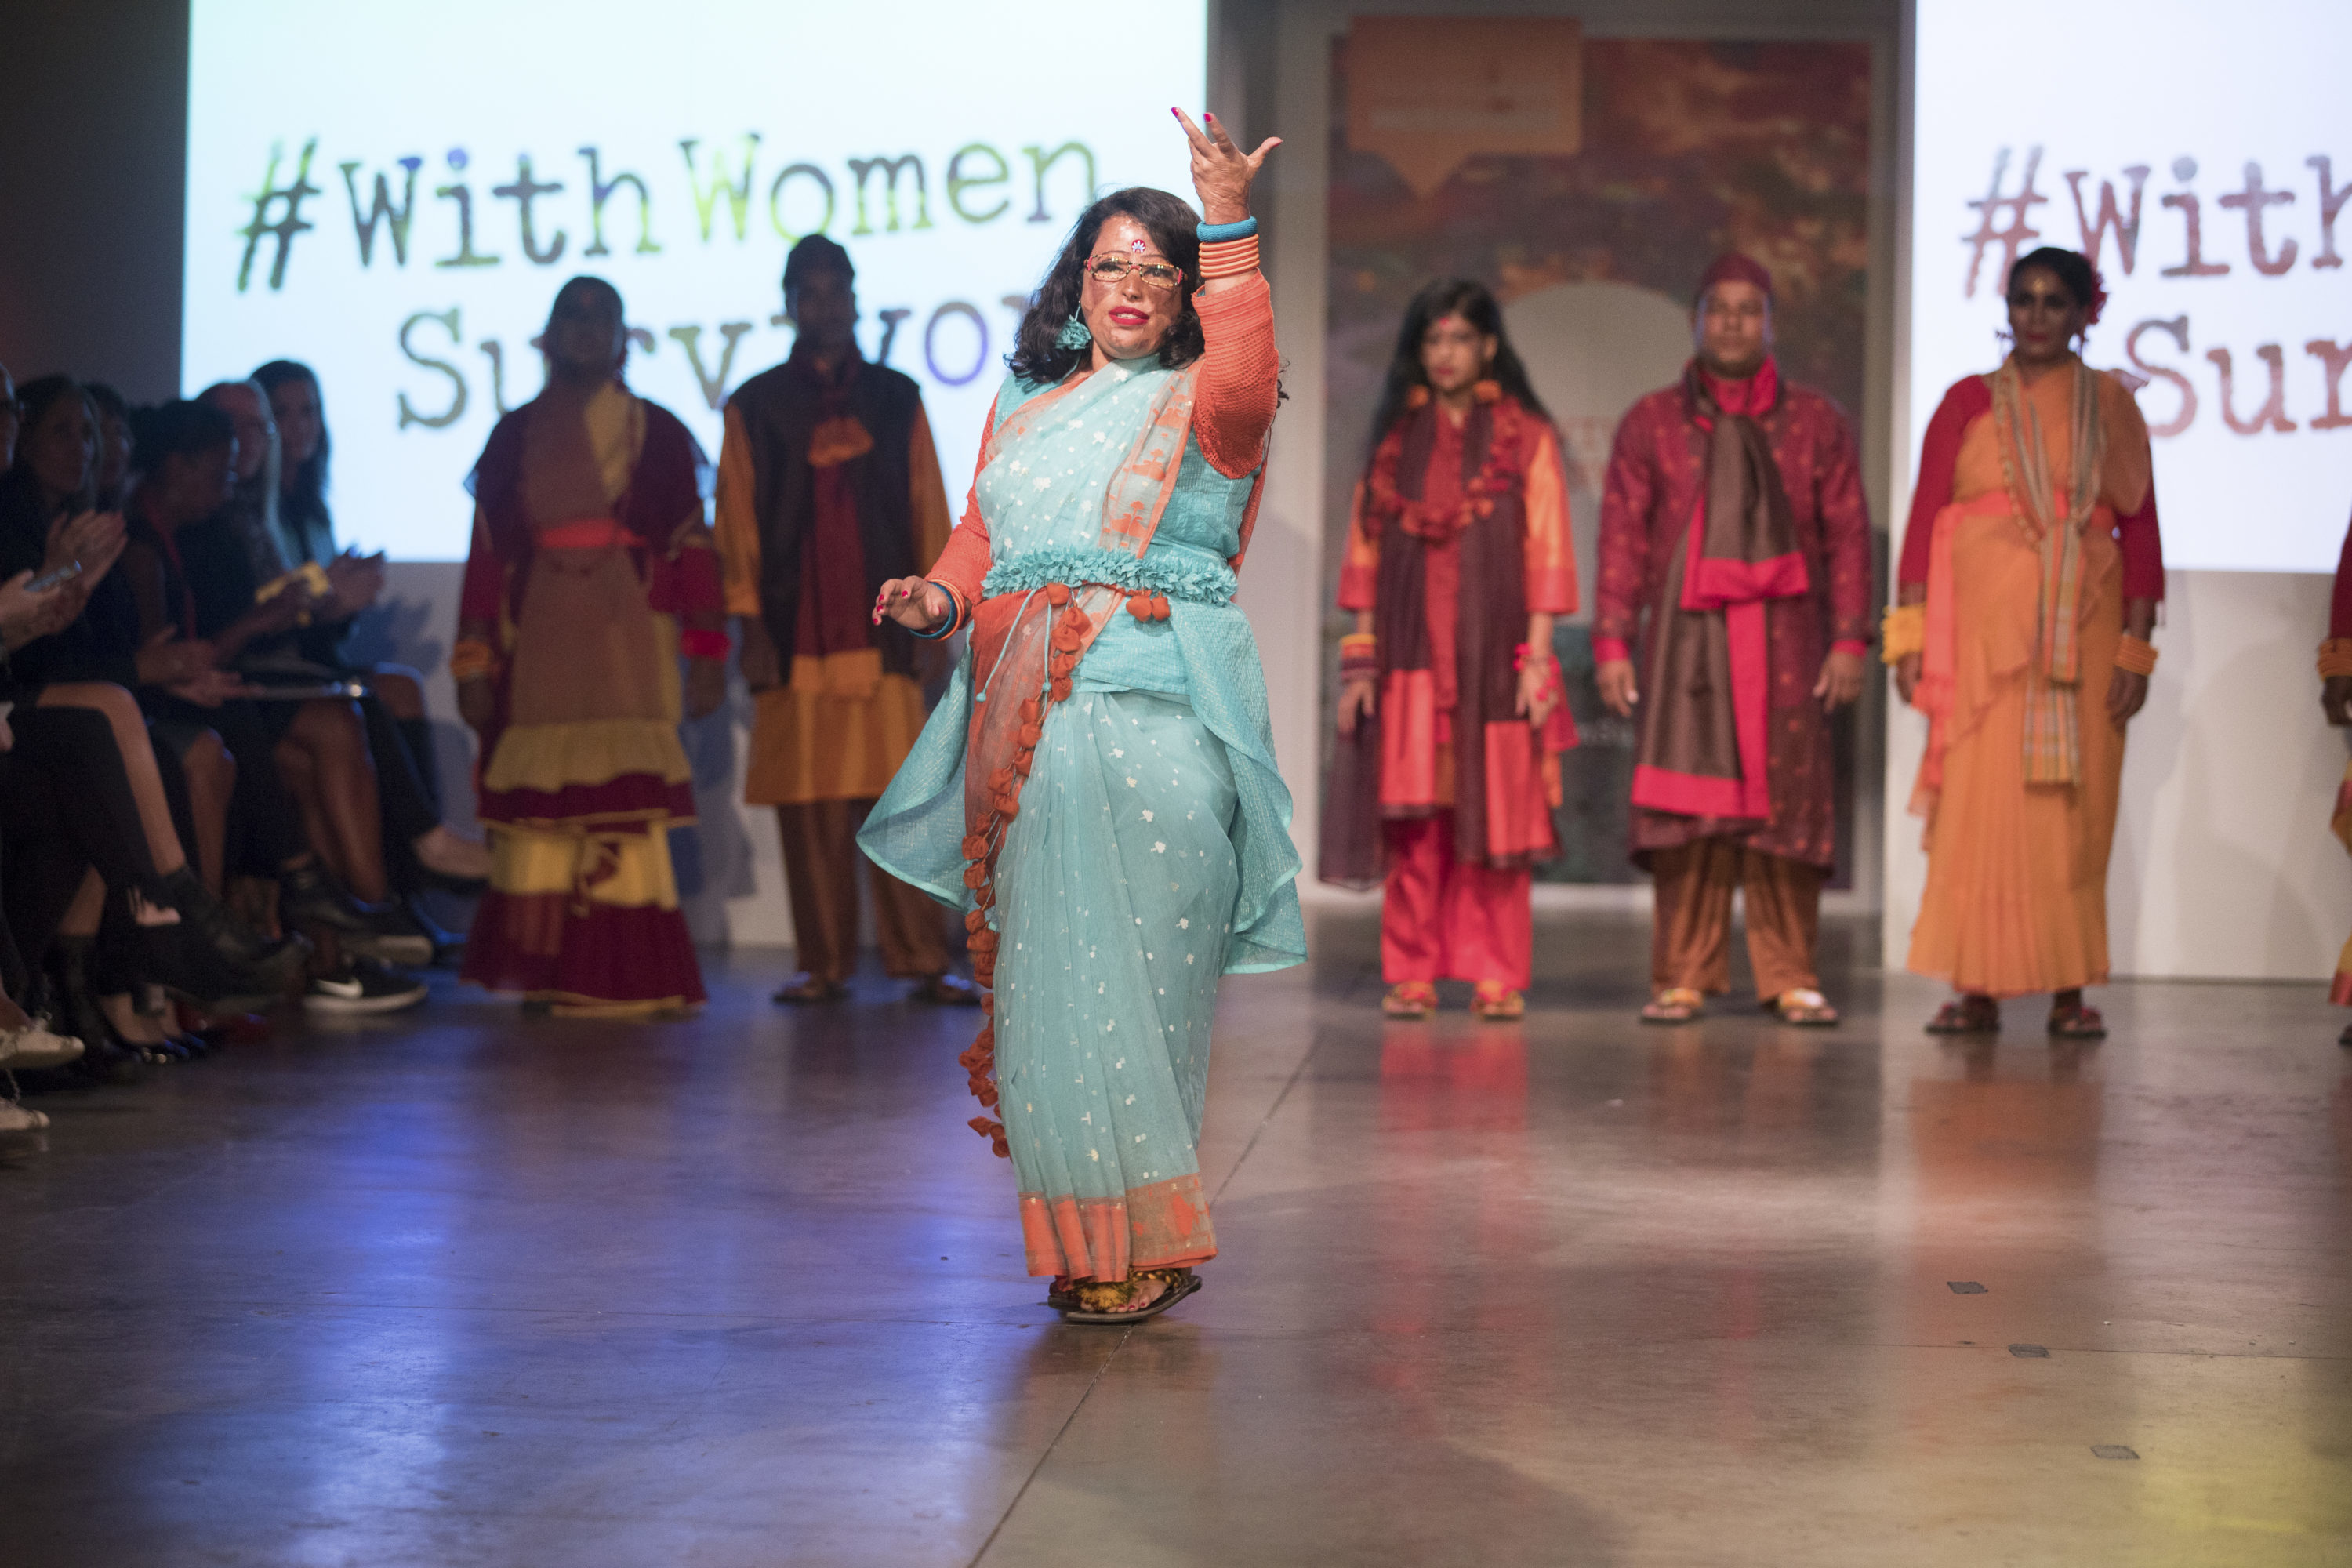 The Old Truman Brewery, Brick Lane, London. 10th October 2017. 'Survivors' Runway' led by acid attack survivors from Bangladesh. Photo Credit: ©Chris Yates